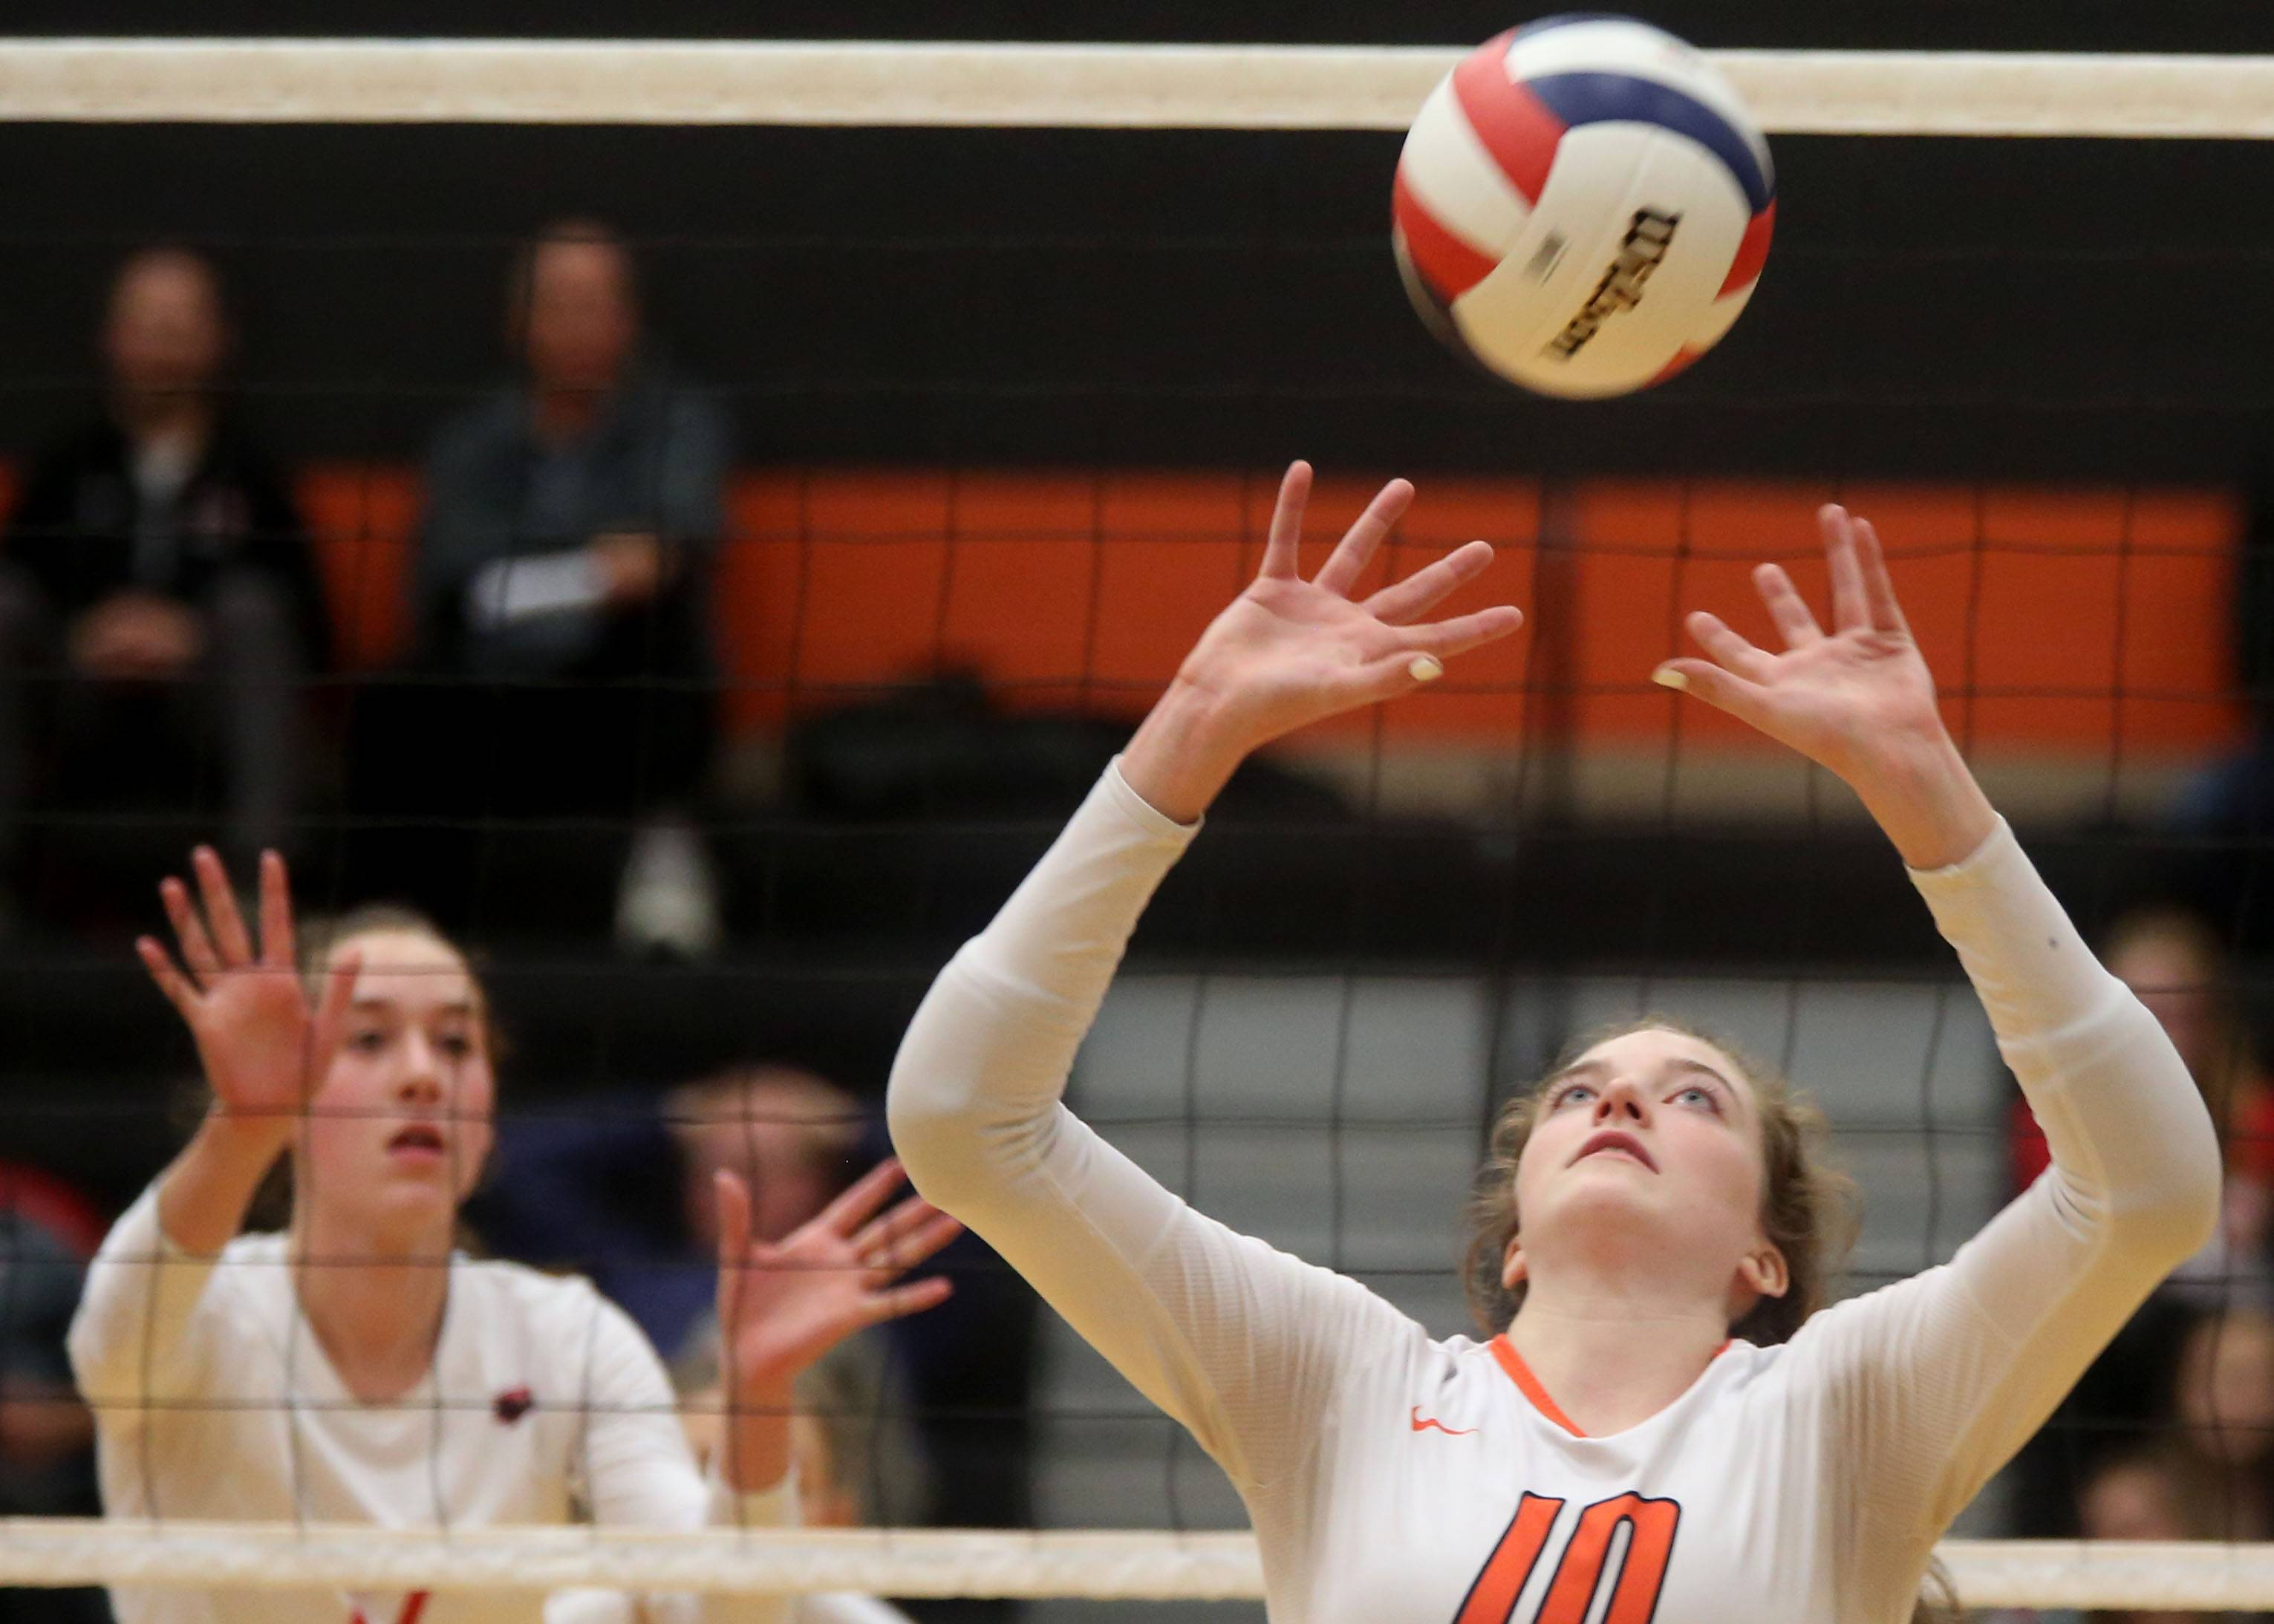 St. Charles East's McKenna Slavic moves the ball against Huntley during sectional semifinal varsity volleyball action at Chuck Dayton Gymnasium on the campus of DeKalb High School Monday night.